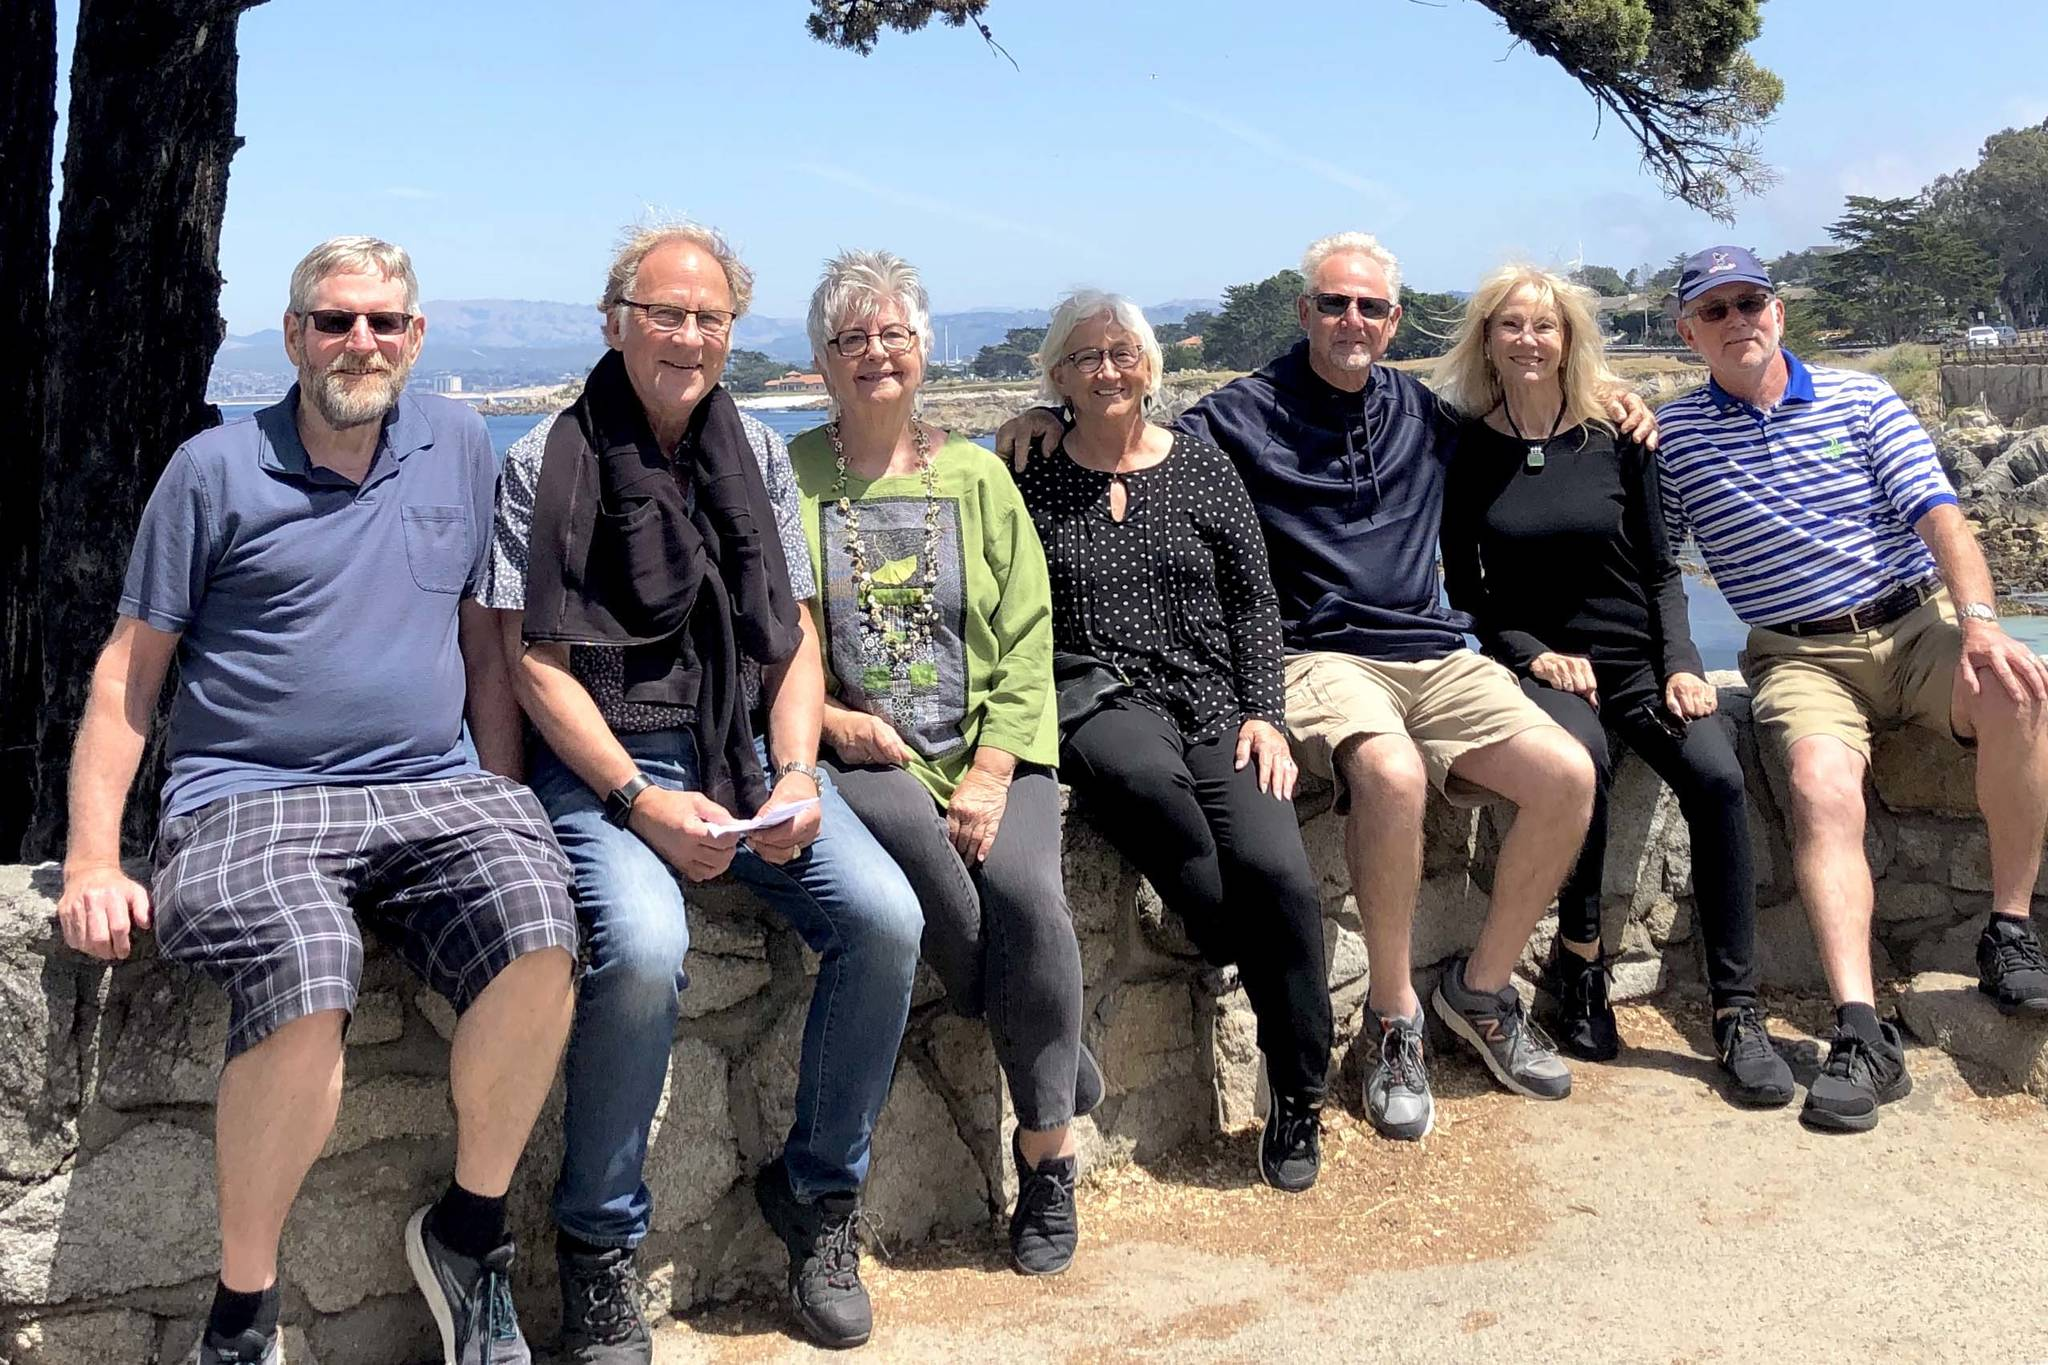 Submitted photo                                A group of Canadian and Americans, including Dave Tryon, left, who was found through social media, are back together for a reunion in California after backpacking Europe in 1969.